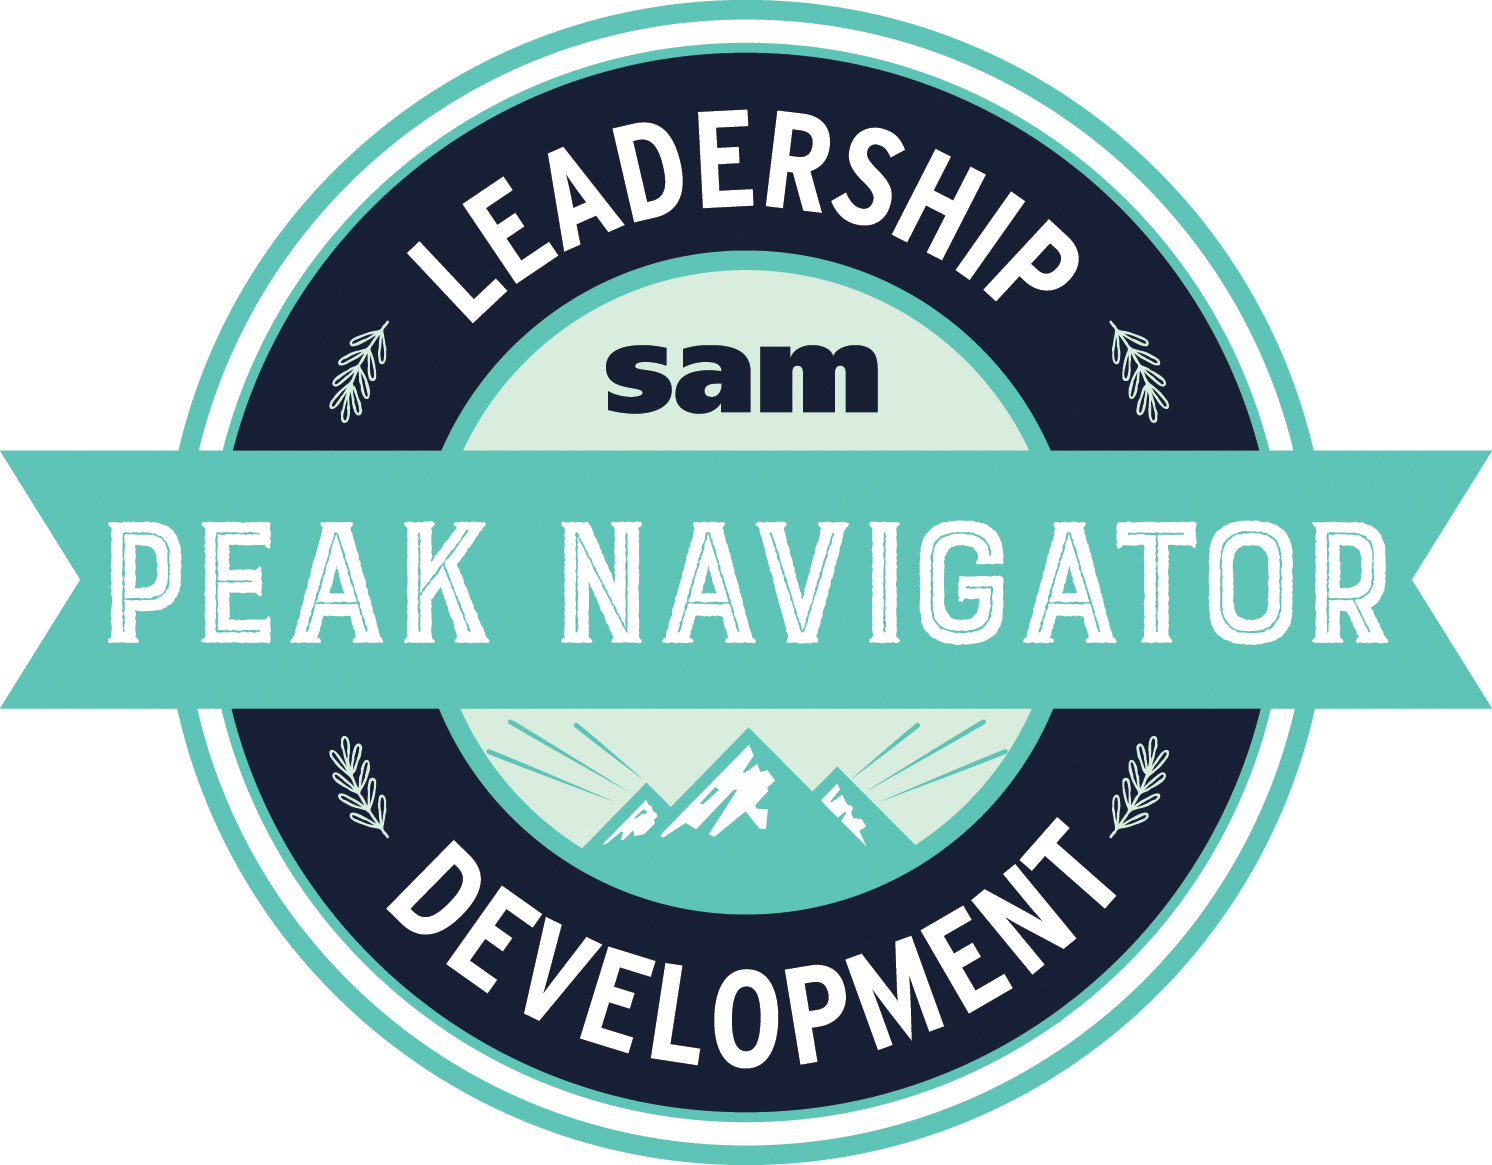 The Peak Navigator Program - For senior level ski area leaders to tune their leadership style, get teams engaged, and build employee loyalty